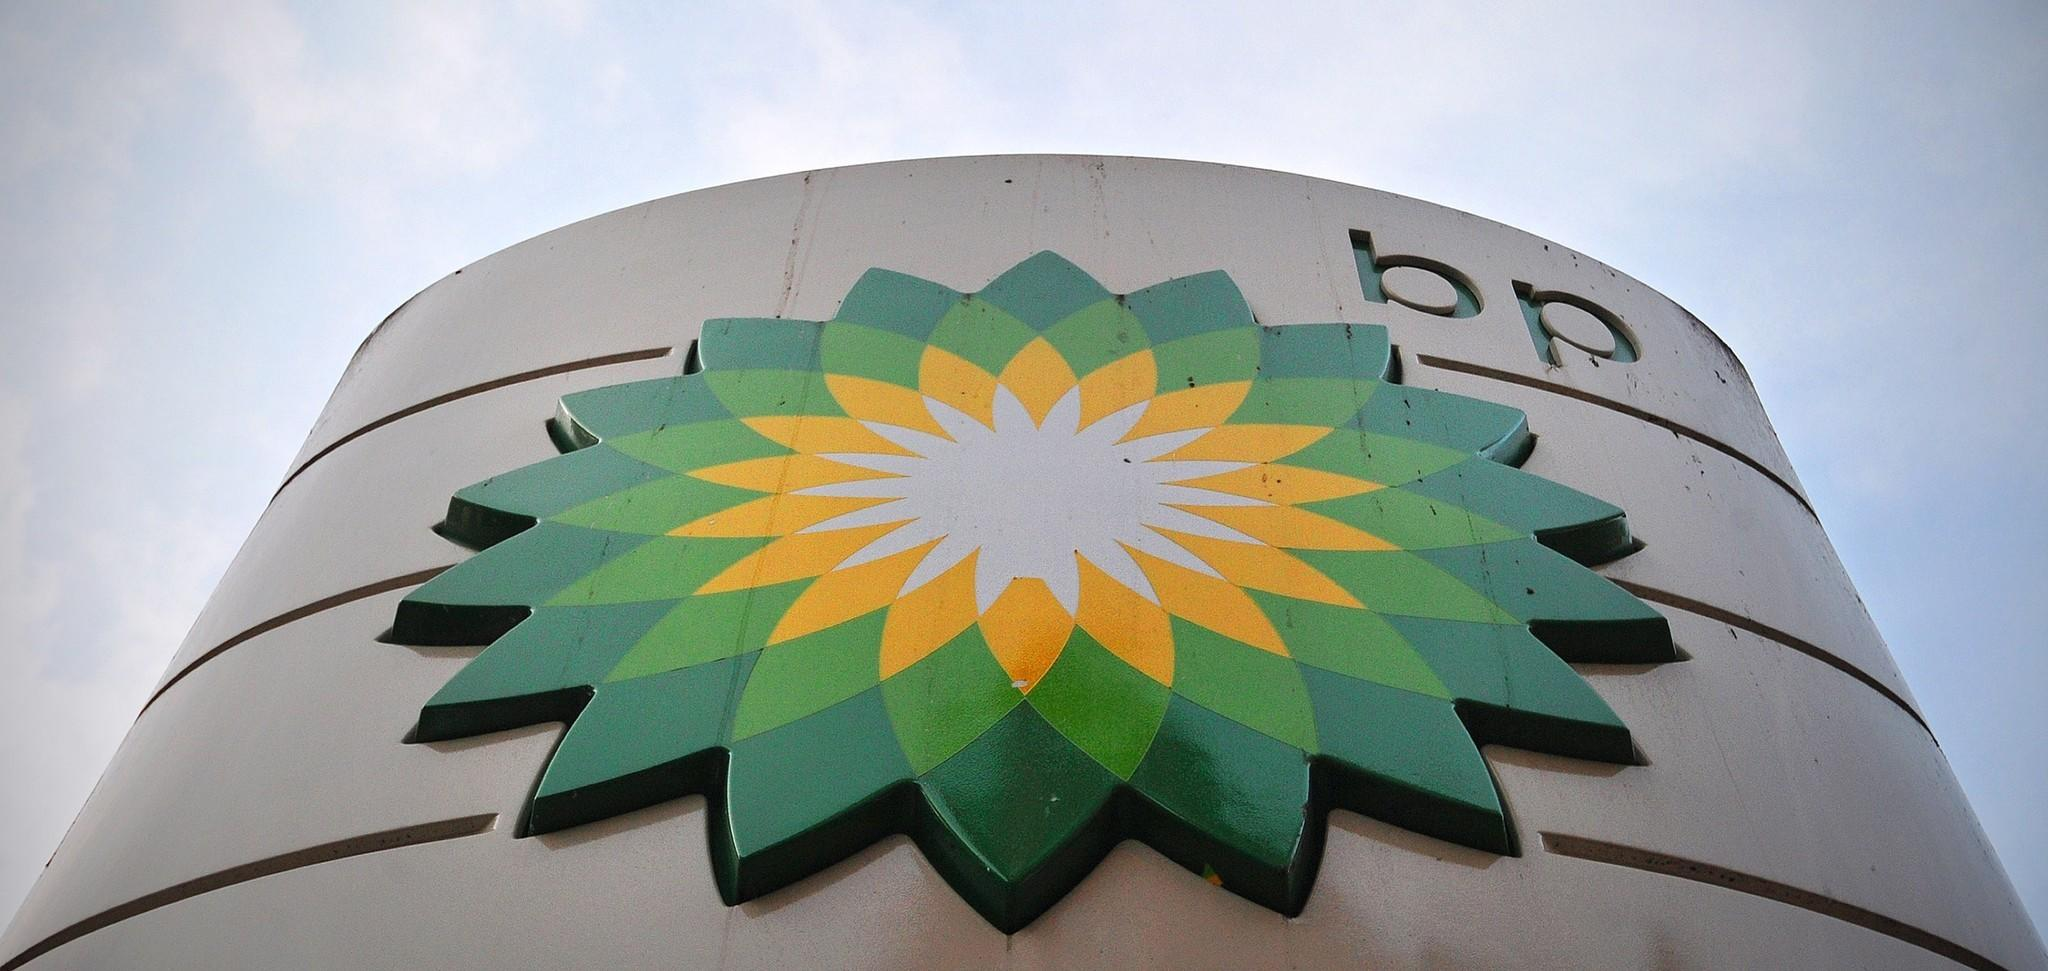 The EPA is lifting a ban on BP getting federal contracts, including drilling leases in the Gulf of Mexico.